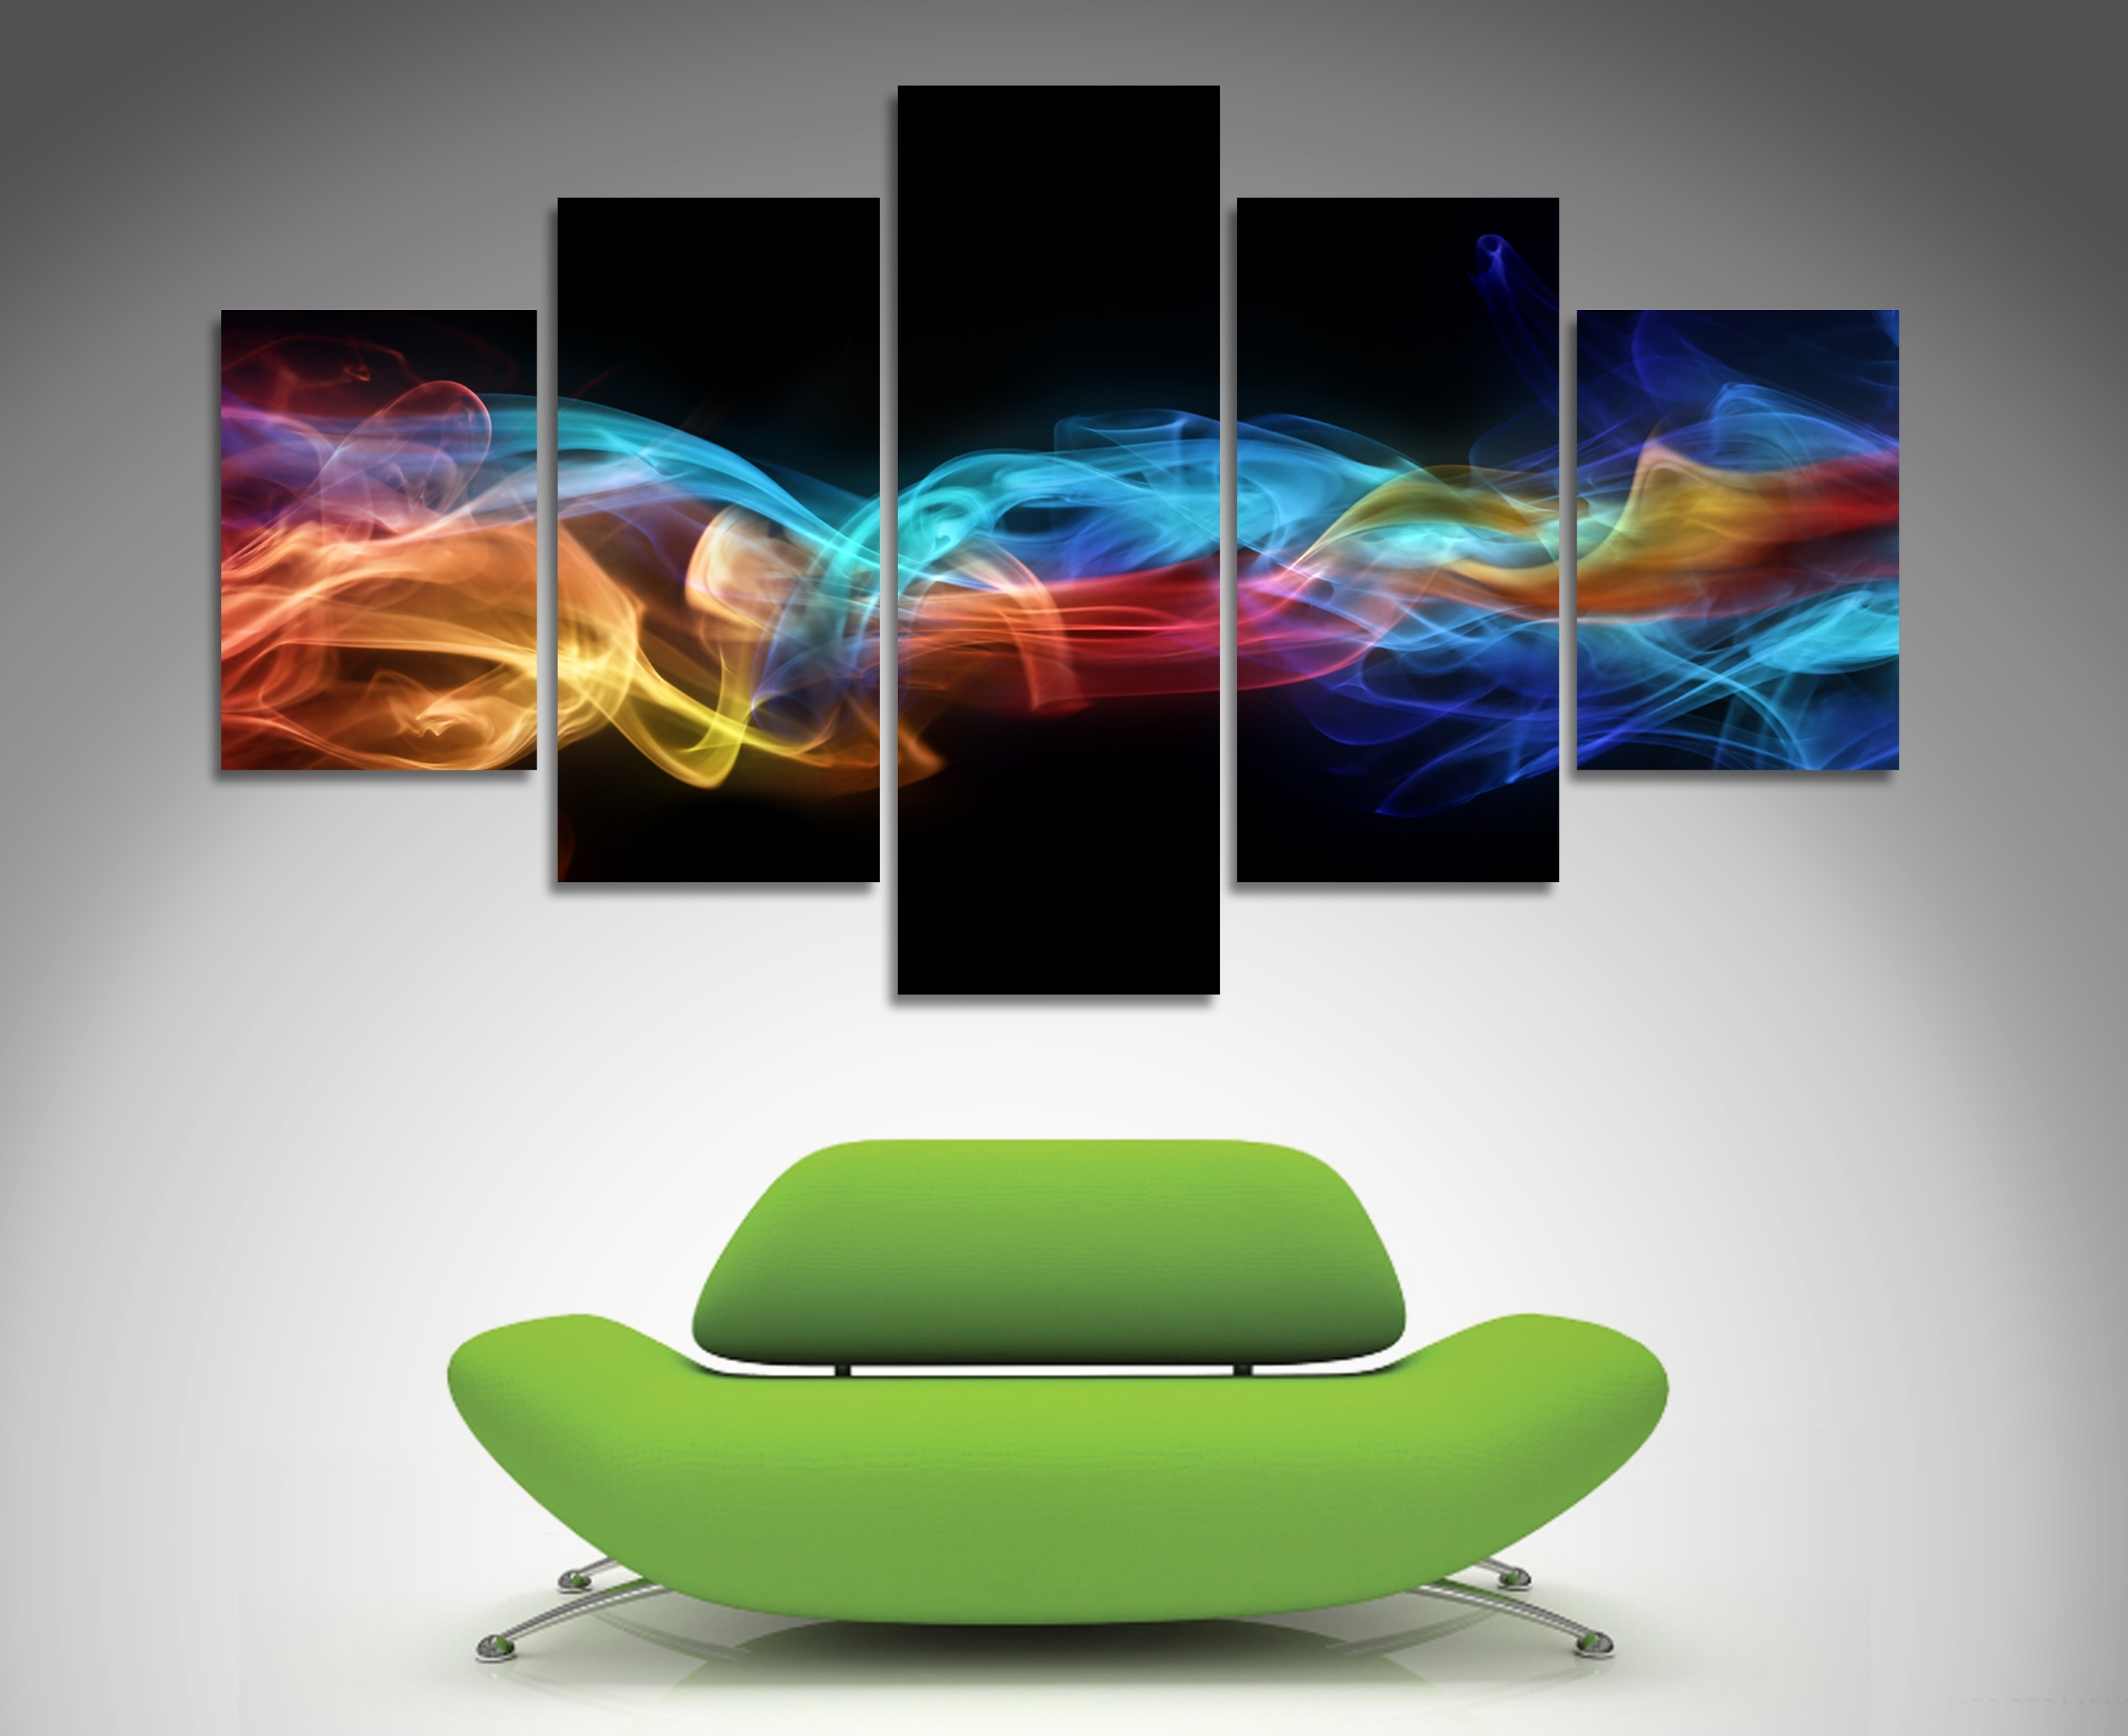 Widely Used Fire And Ice 5 Panel Wall Art (View 15 of 15)